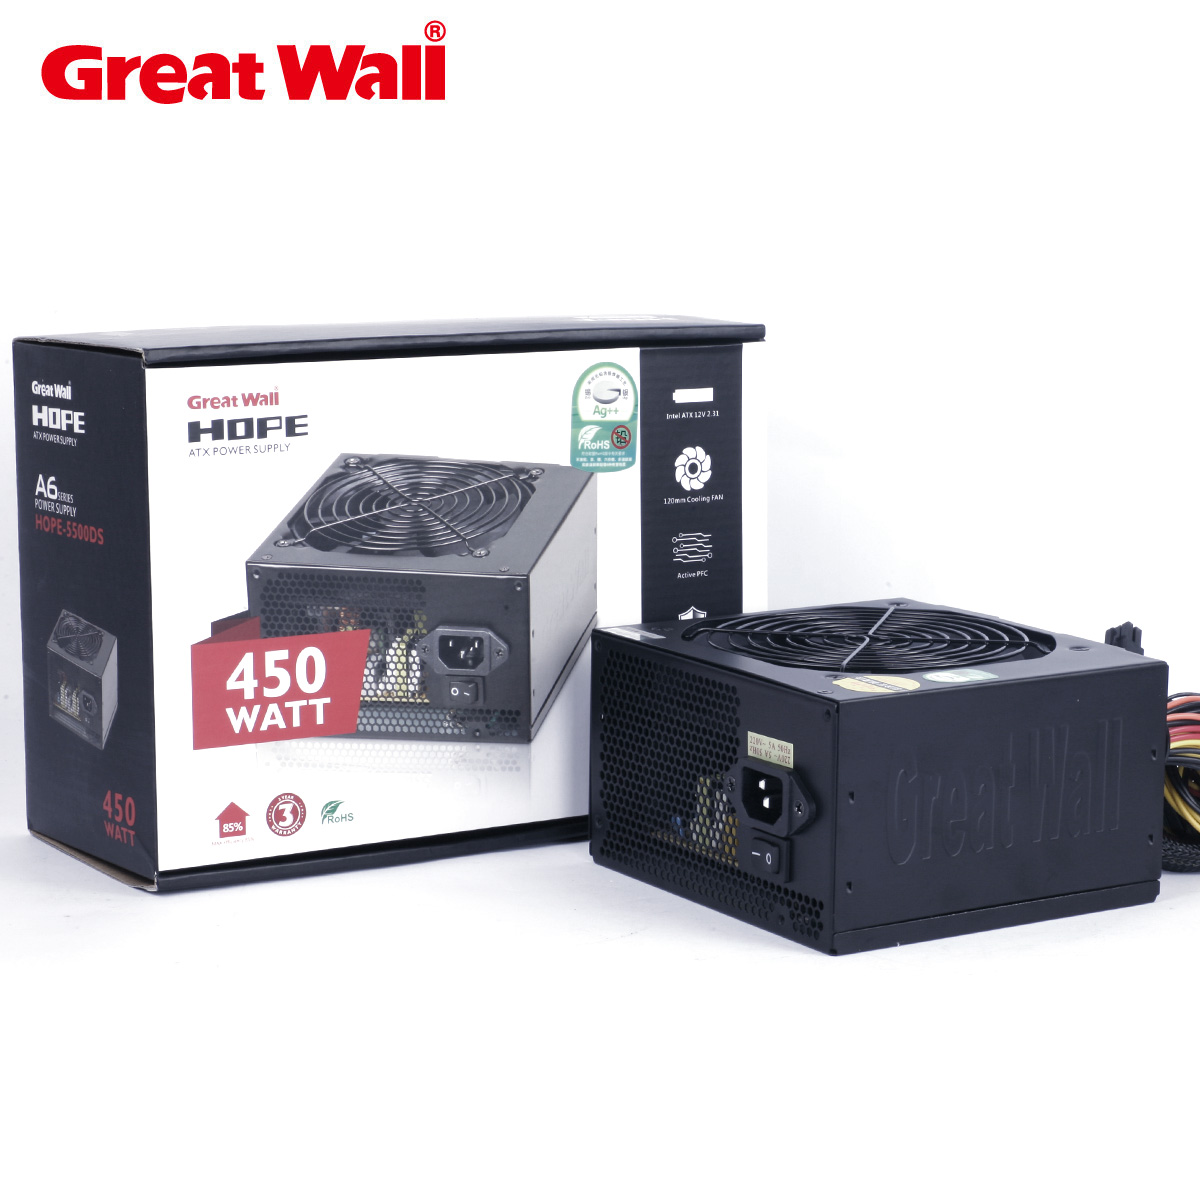 Great wall of the great wall power supply hope-5500ds 450w machine computer power supply line power supply